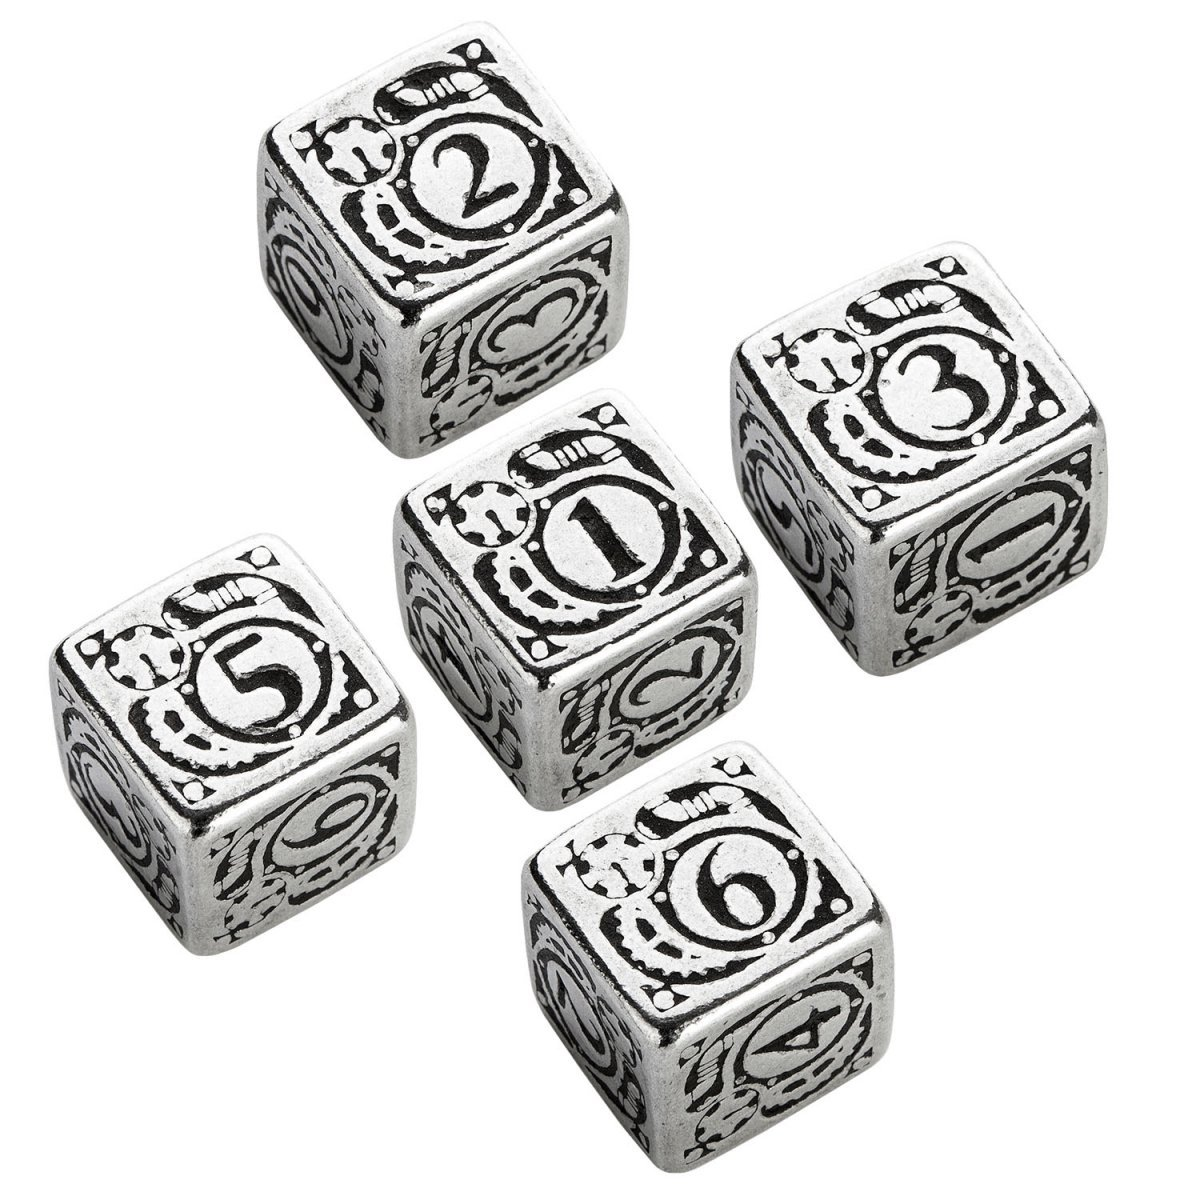 Q-Workshop QWS 56MST35 Steampunk Metal D6 Dice, Set of 5: Amazon.ca: Toys &  Games